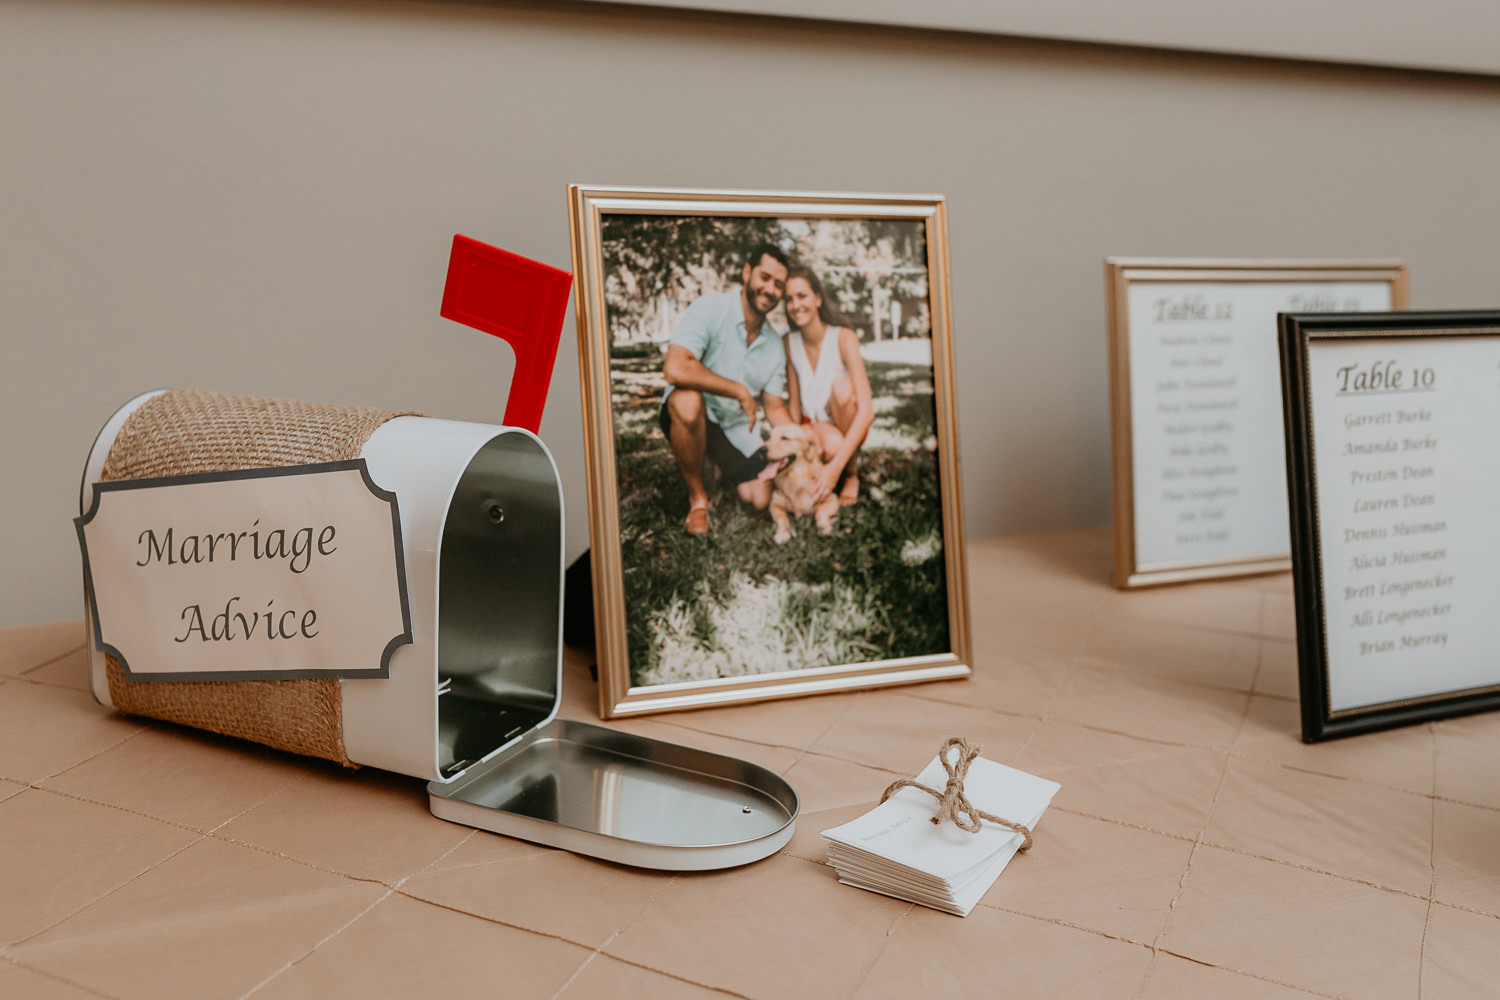 mailbox wrapped in ropes with sigh for guest to leave marriage advice